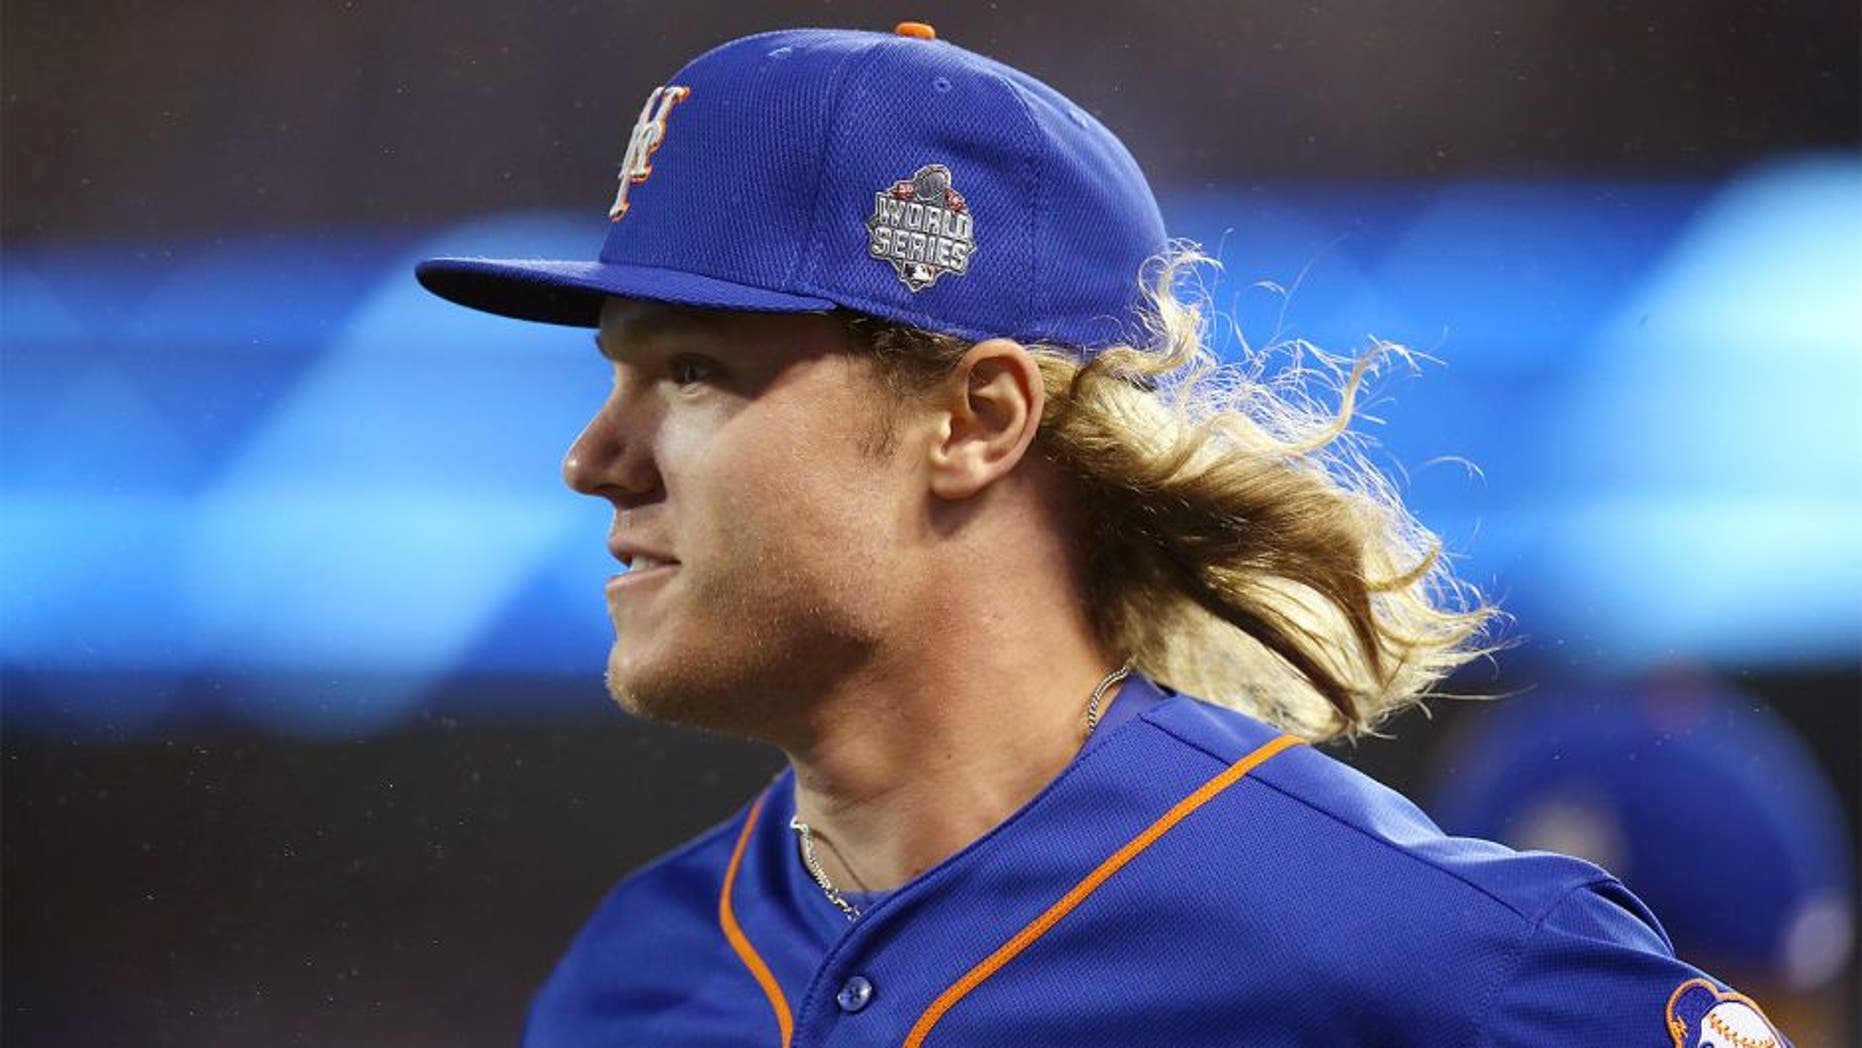 KANSAS CITY, MO - OCTOBER 27: Noah Syndergaard #34 of the New York Mets walks on the field during Game 1 of the 2015 World Series against the Kansas City Royals at Kauffman Stadium on Tuesday, October 27, 2015 in Kansas City, Missouri. (Photo by Brad Mangin/MLB Photos via Getty Images)